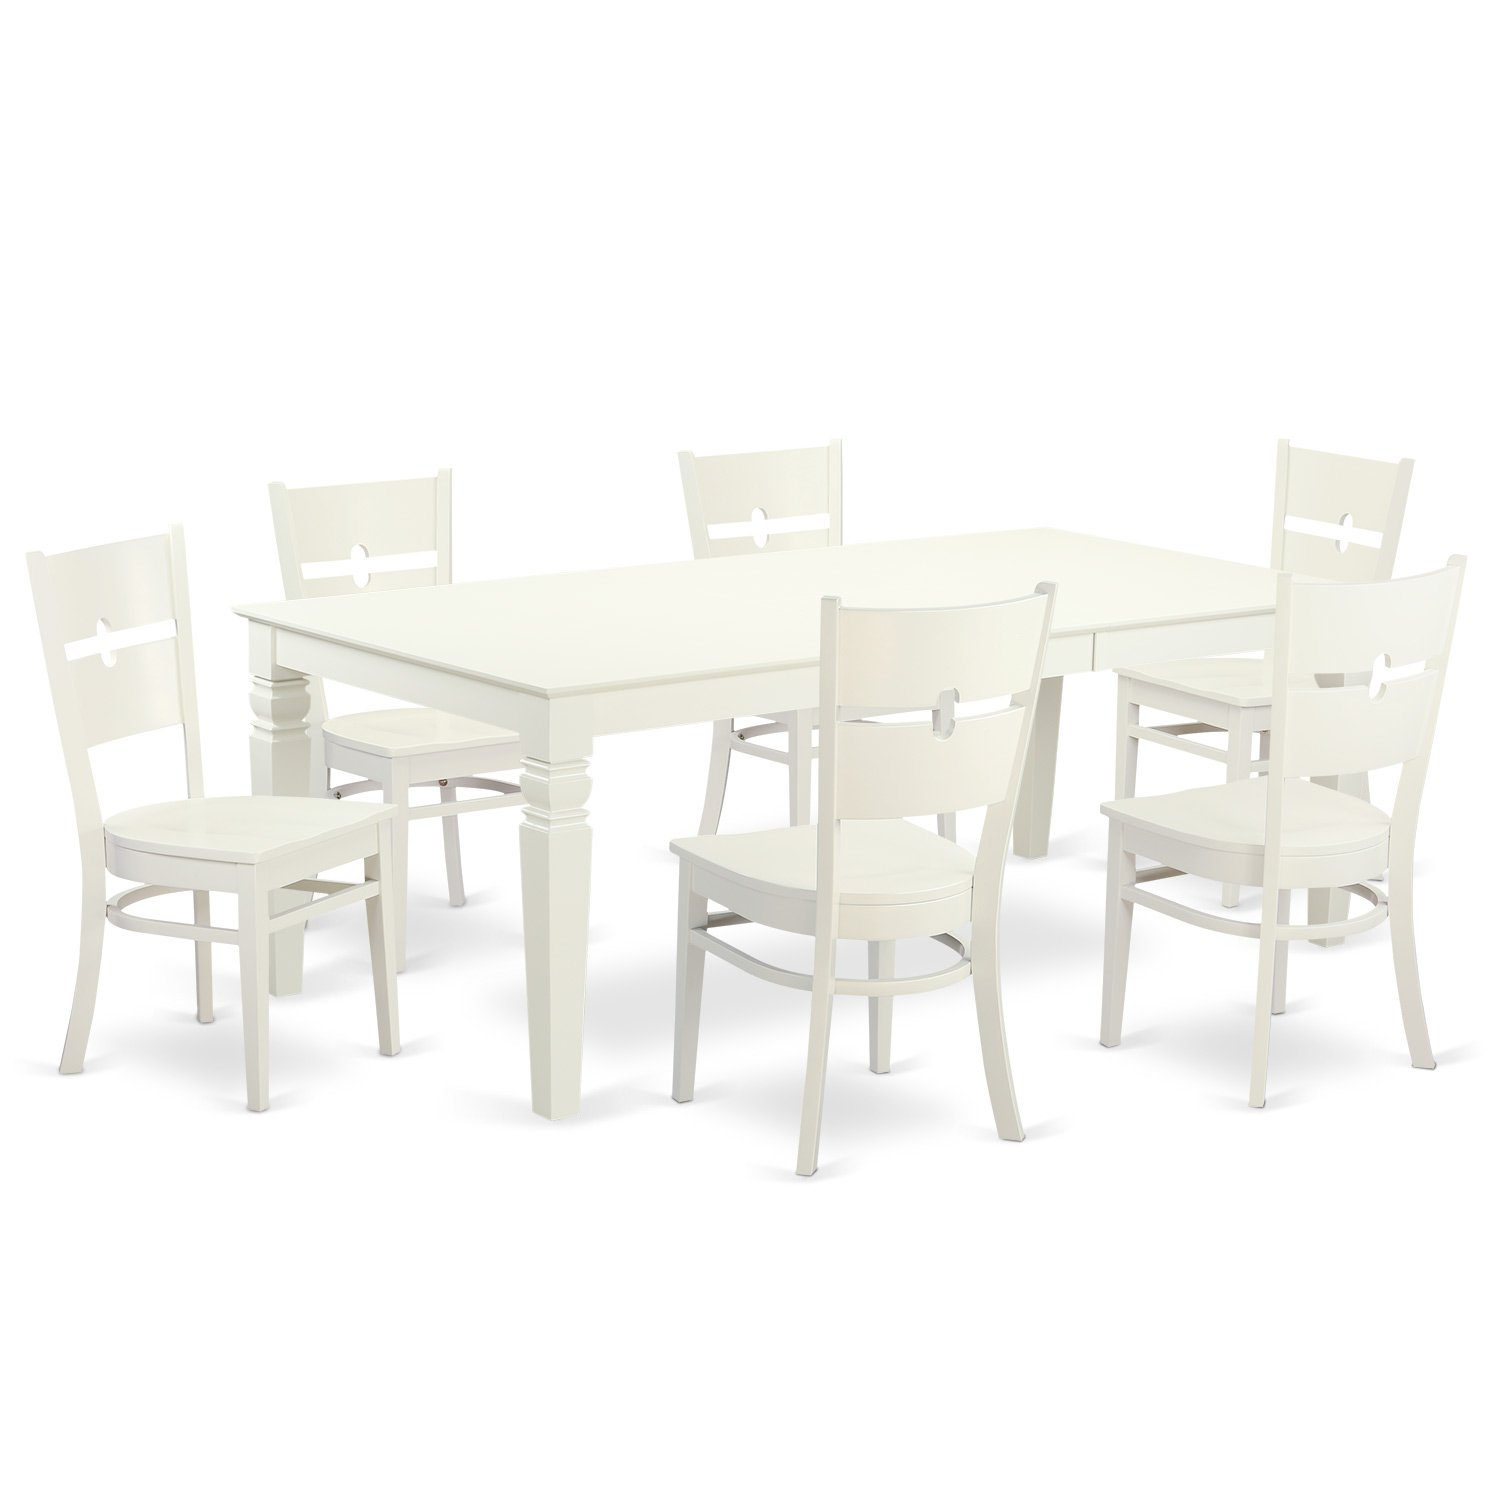 LGRO7-LWH-W 7 Pc Table and chair set with a Dining Table and 6 Dining Chairs in Linen White